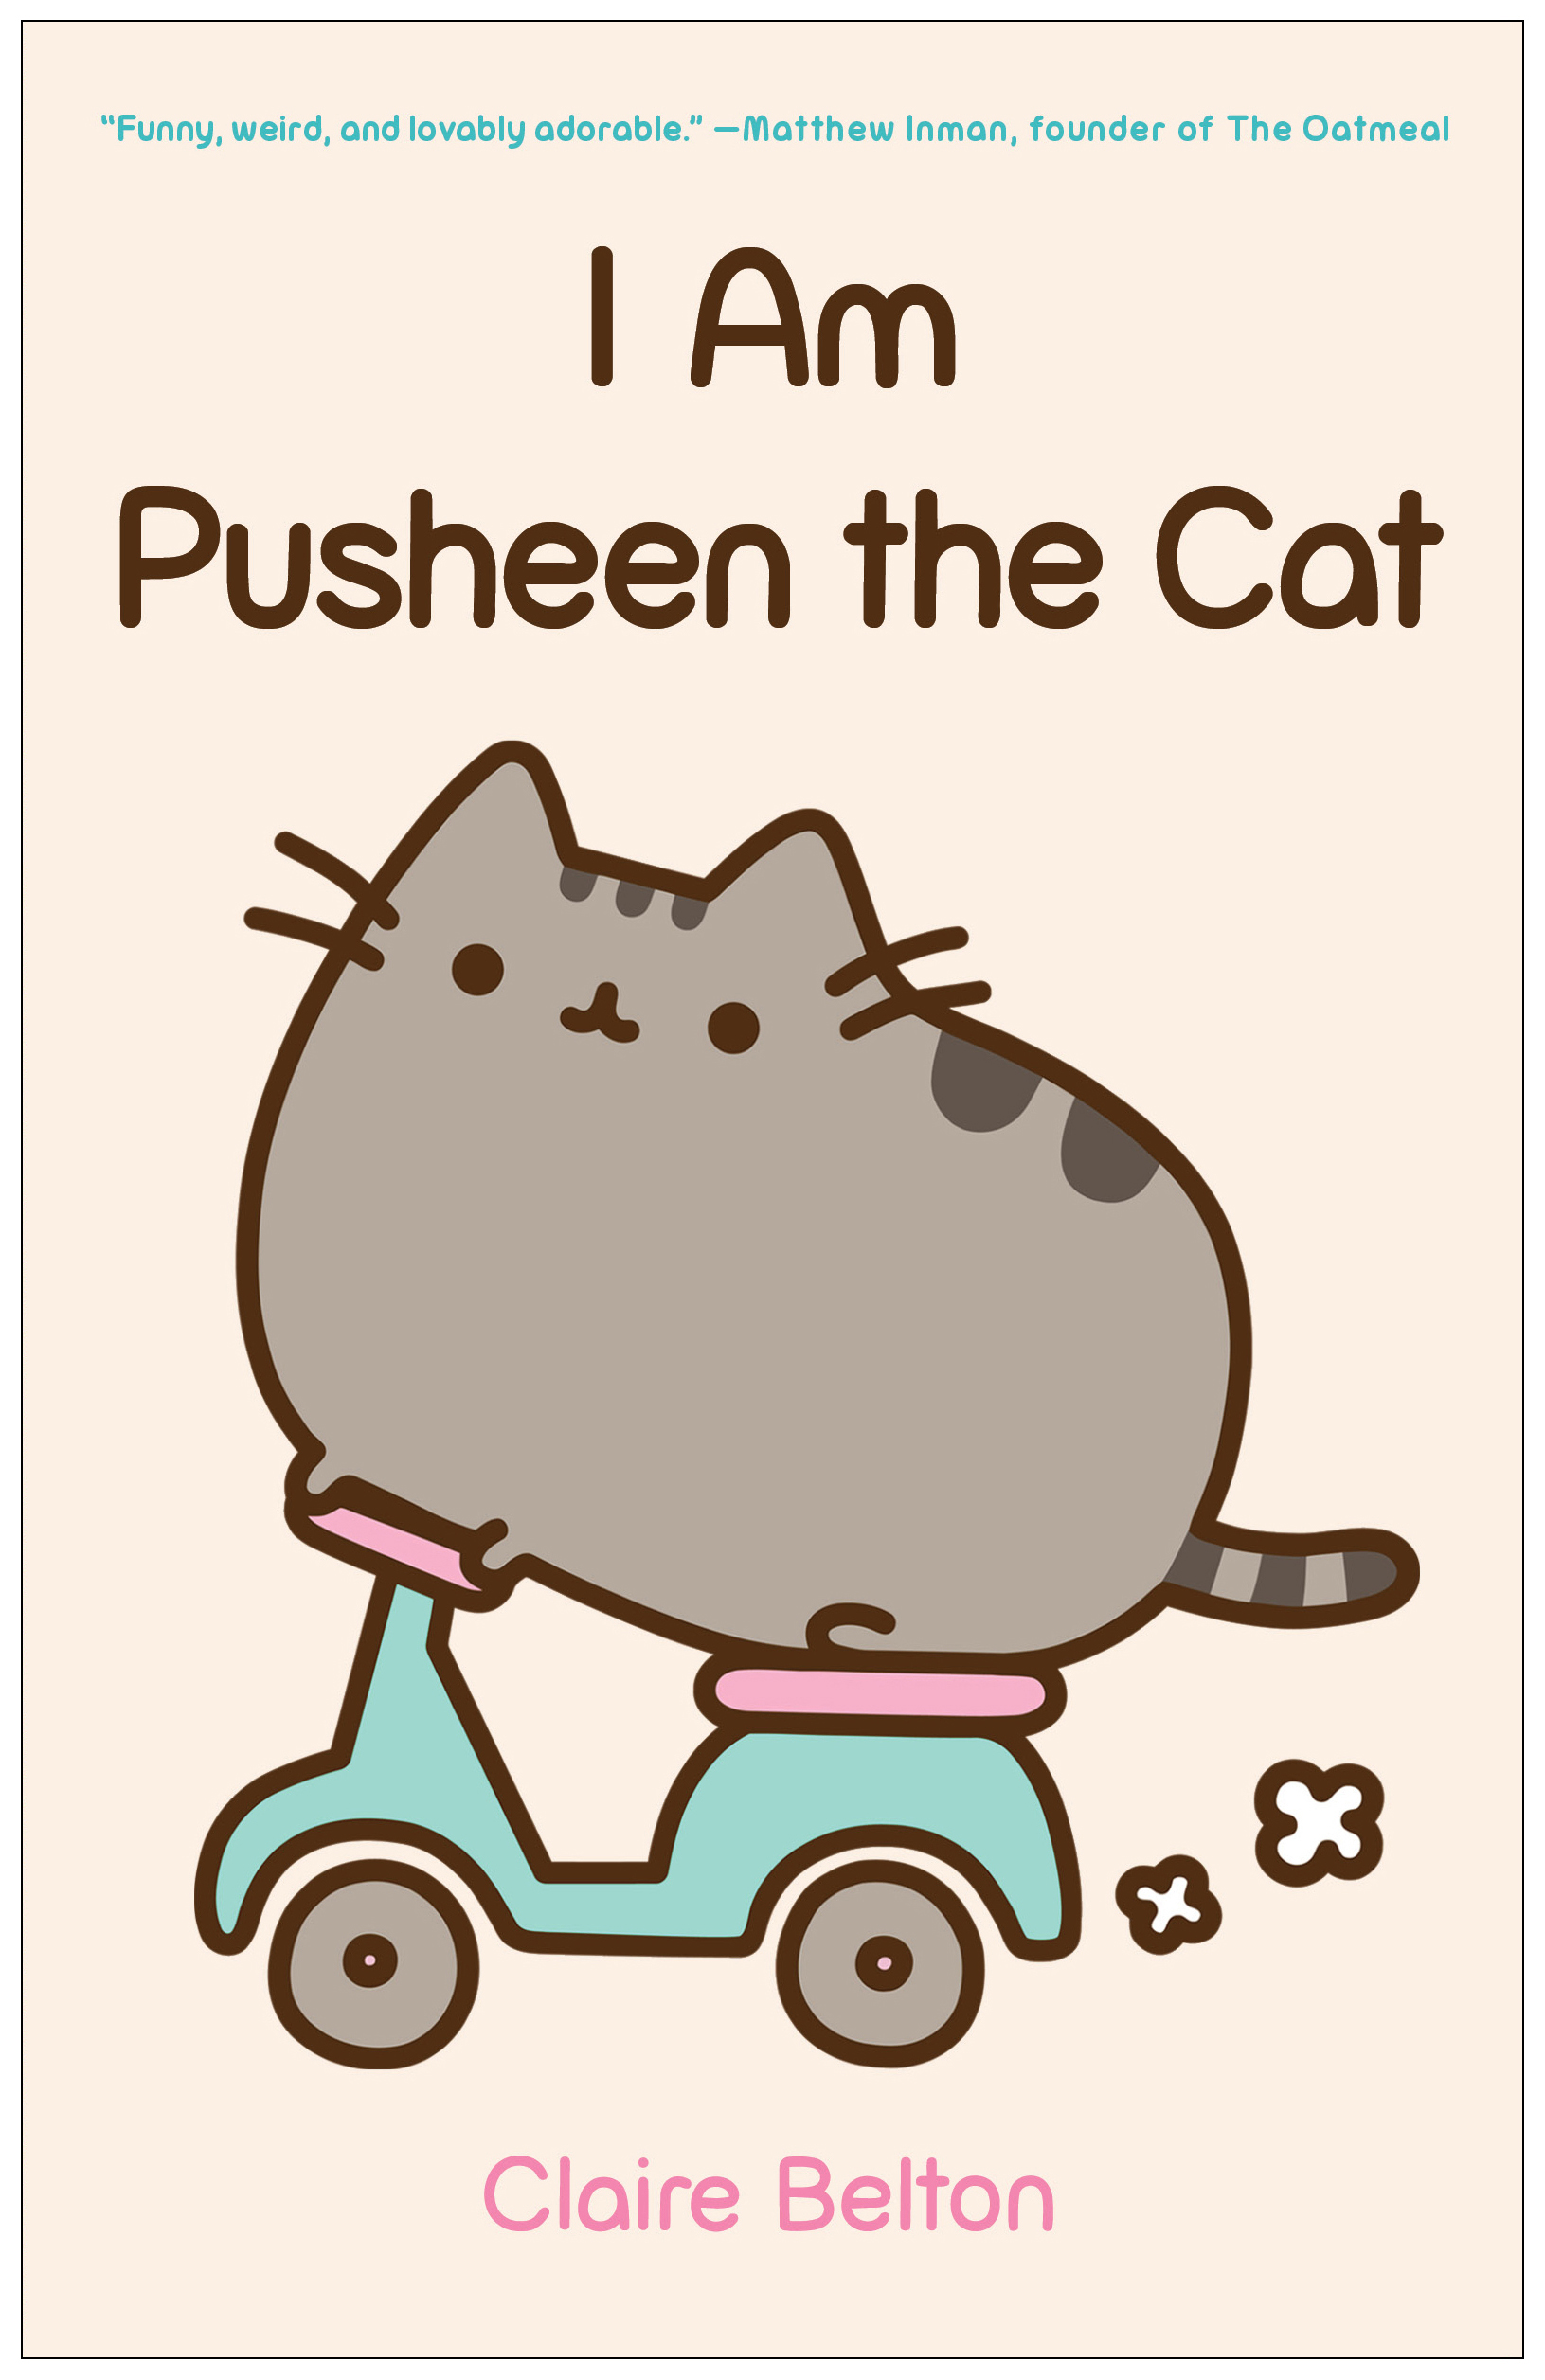 Christmas fancy dress ideas list - Am Pusheen The Cat Book By Claire Belton Official Publisher Page